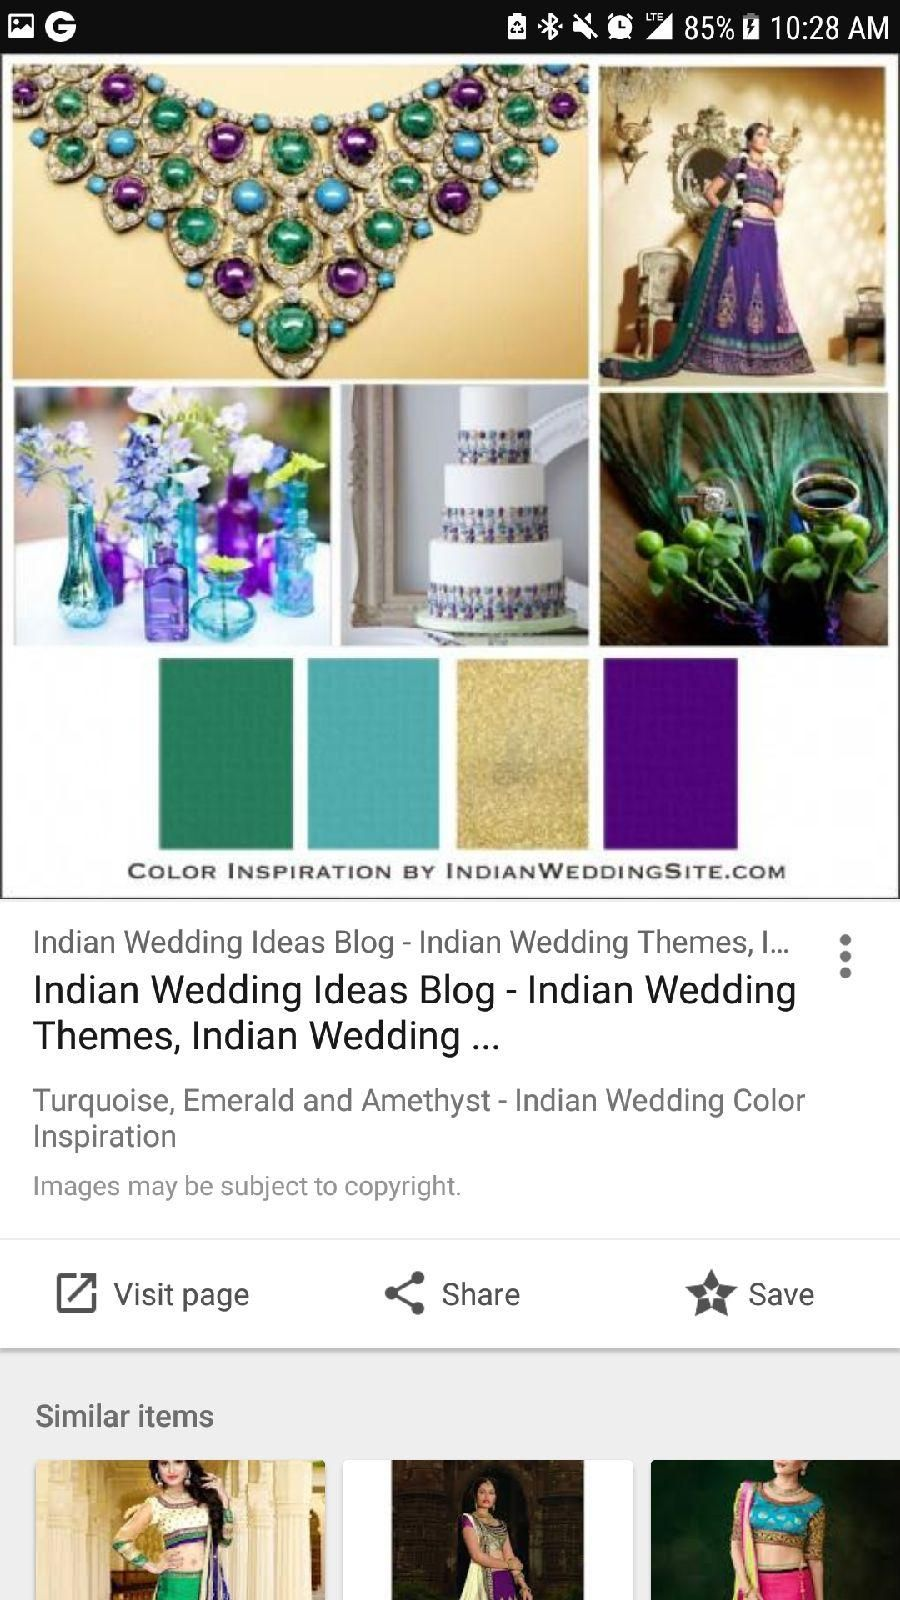 Unique Indian Wedding Ideas Themes Image Collection - Wedding Idea ...